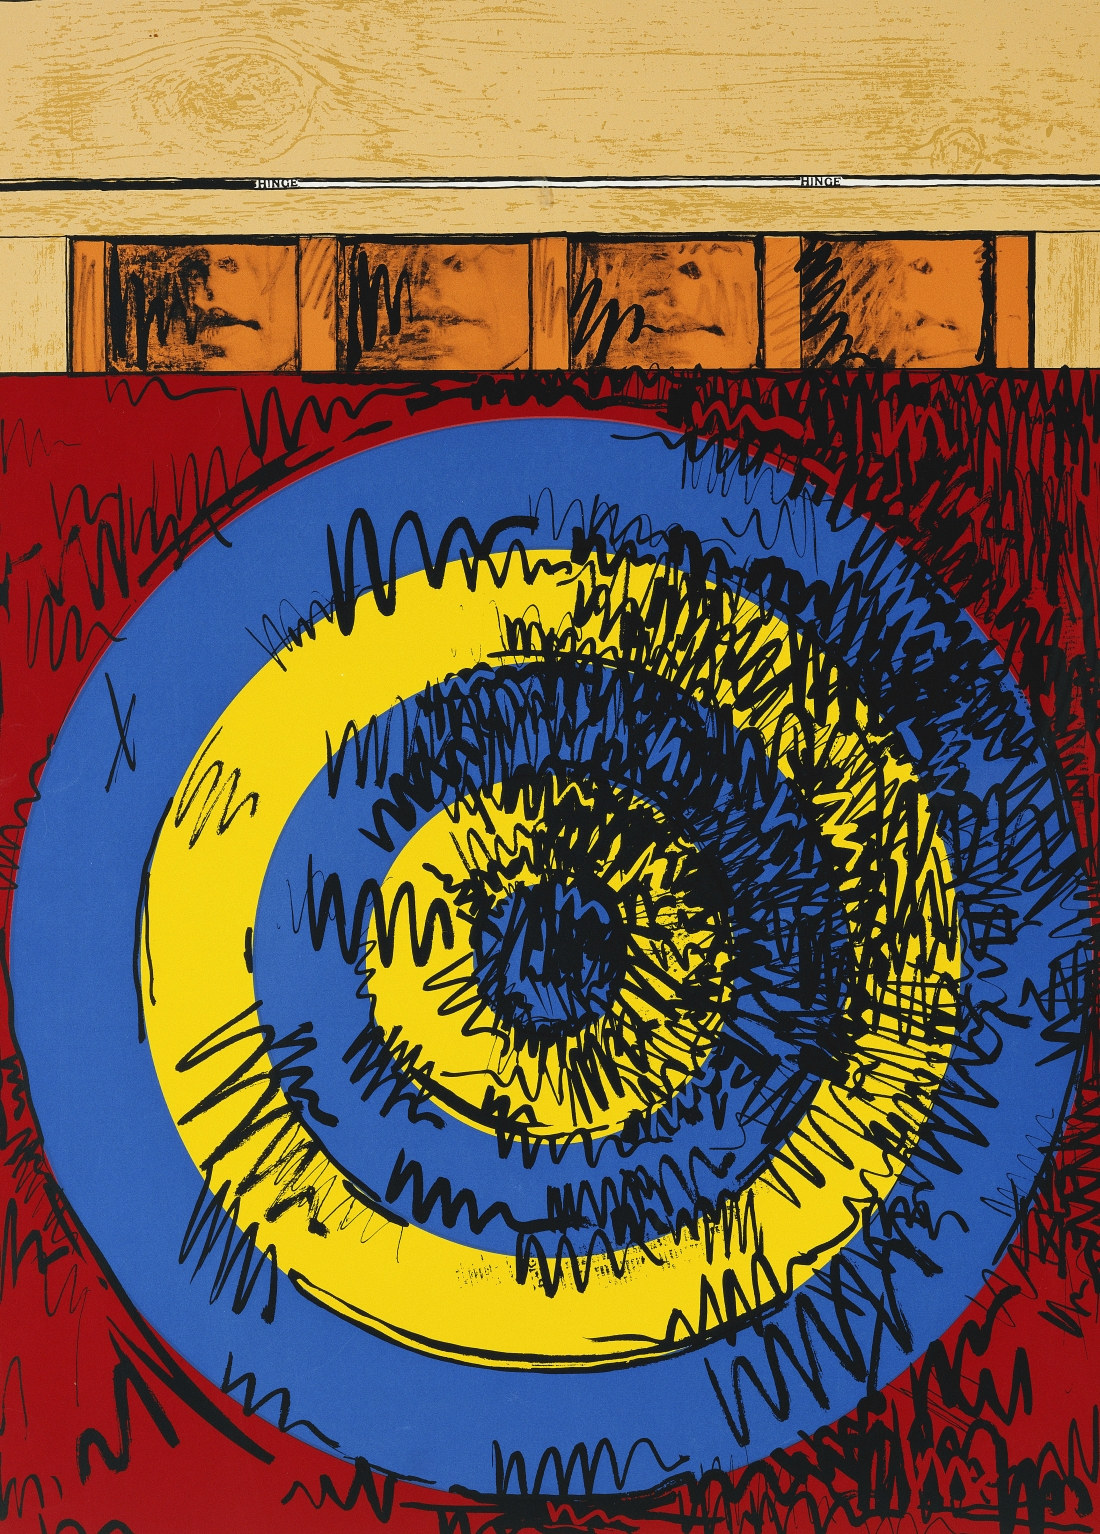 Jasper Johns Target with Four Faces, 1968 Silkscreen print on paper, 91.6 × 66.7 cm. © Jasper Johns/DACS, London/VAGA, NY 2018. Collection: The Provost and Scholars of King's College, Cambridge